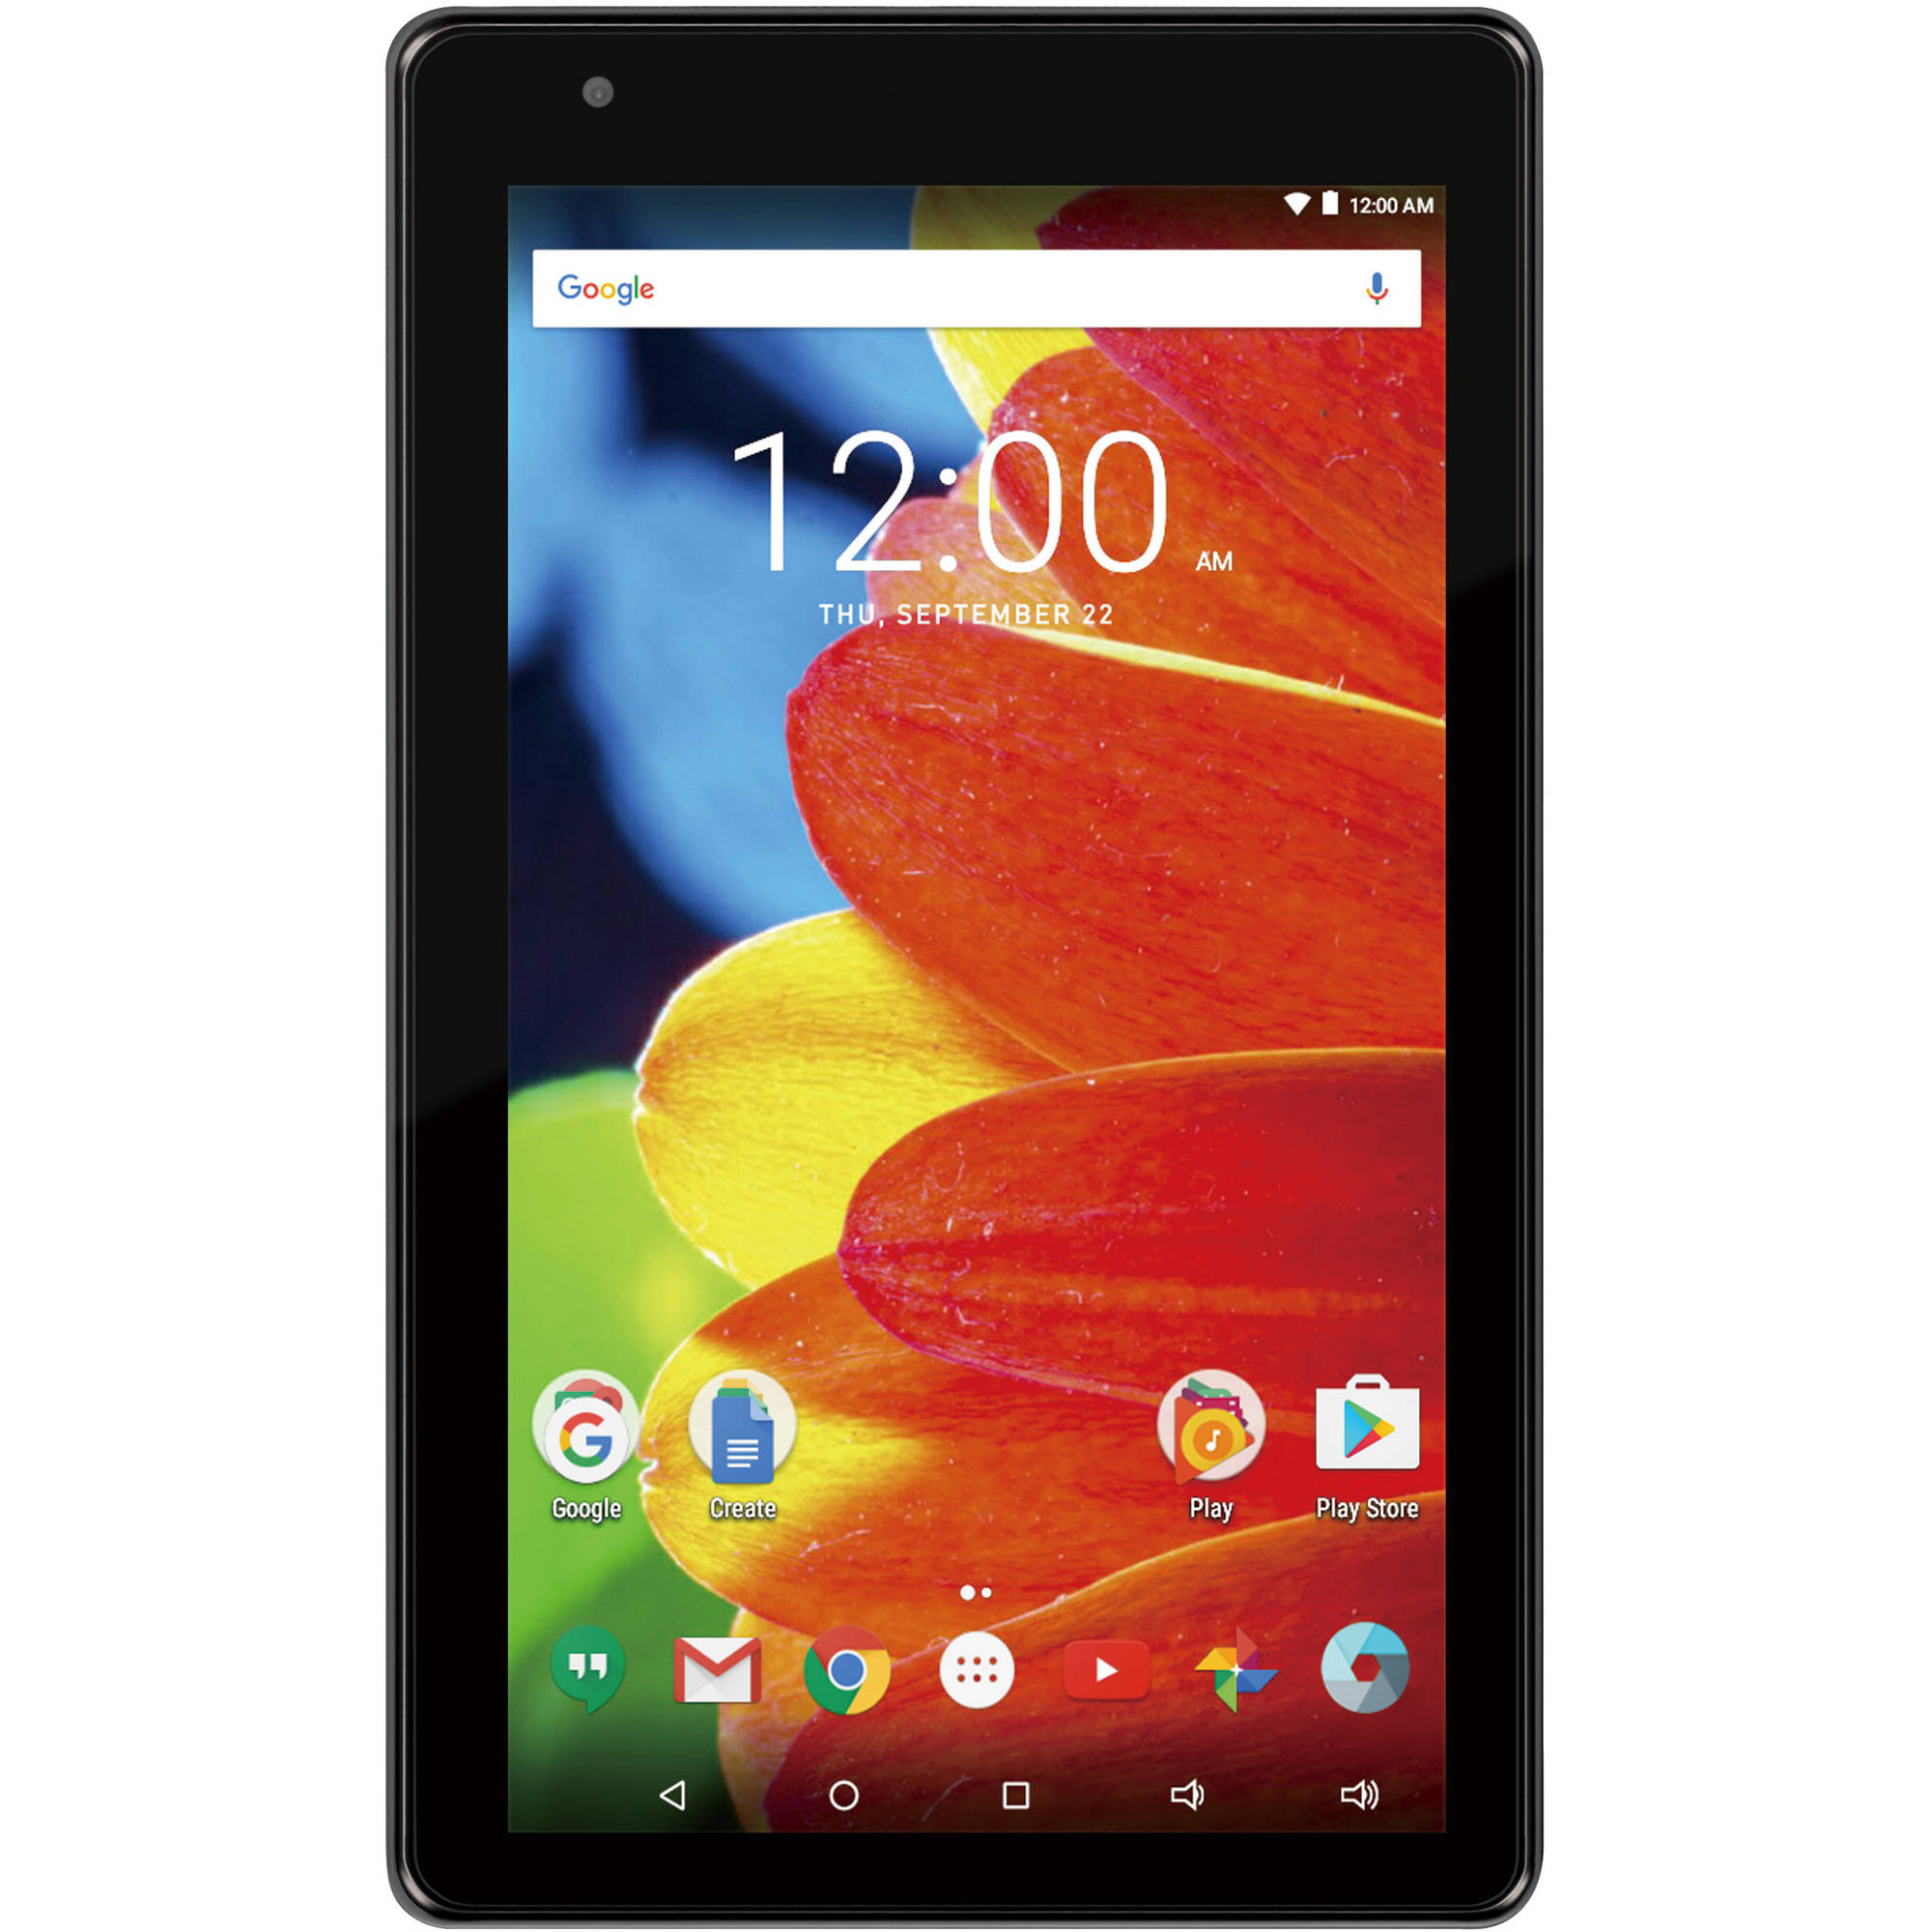 Stupendous Rca Voyager 7 16Gb Tablet Android Os Download Free Architecture Designs Scobabritishbridgeorg